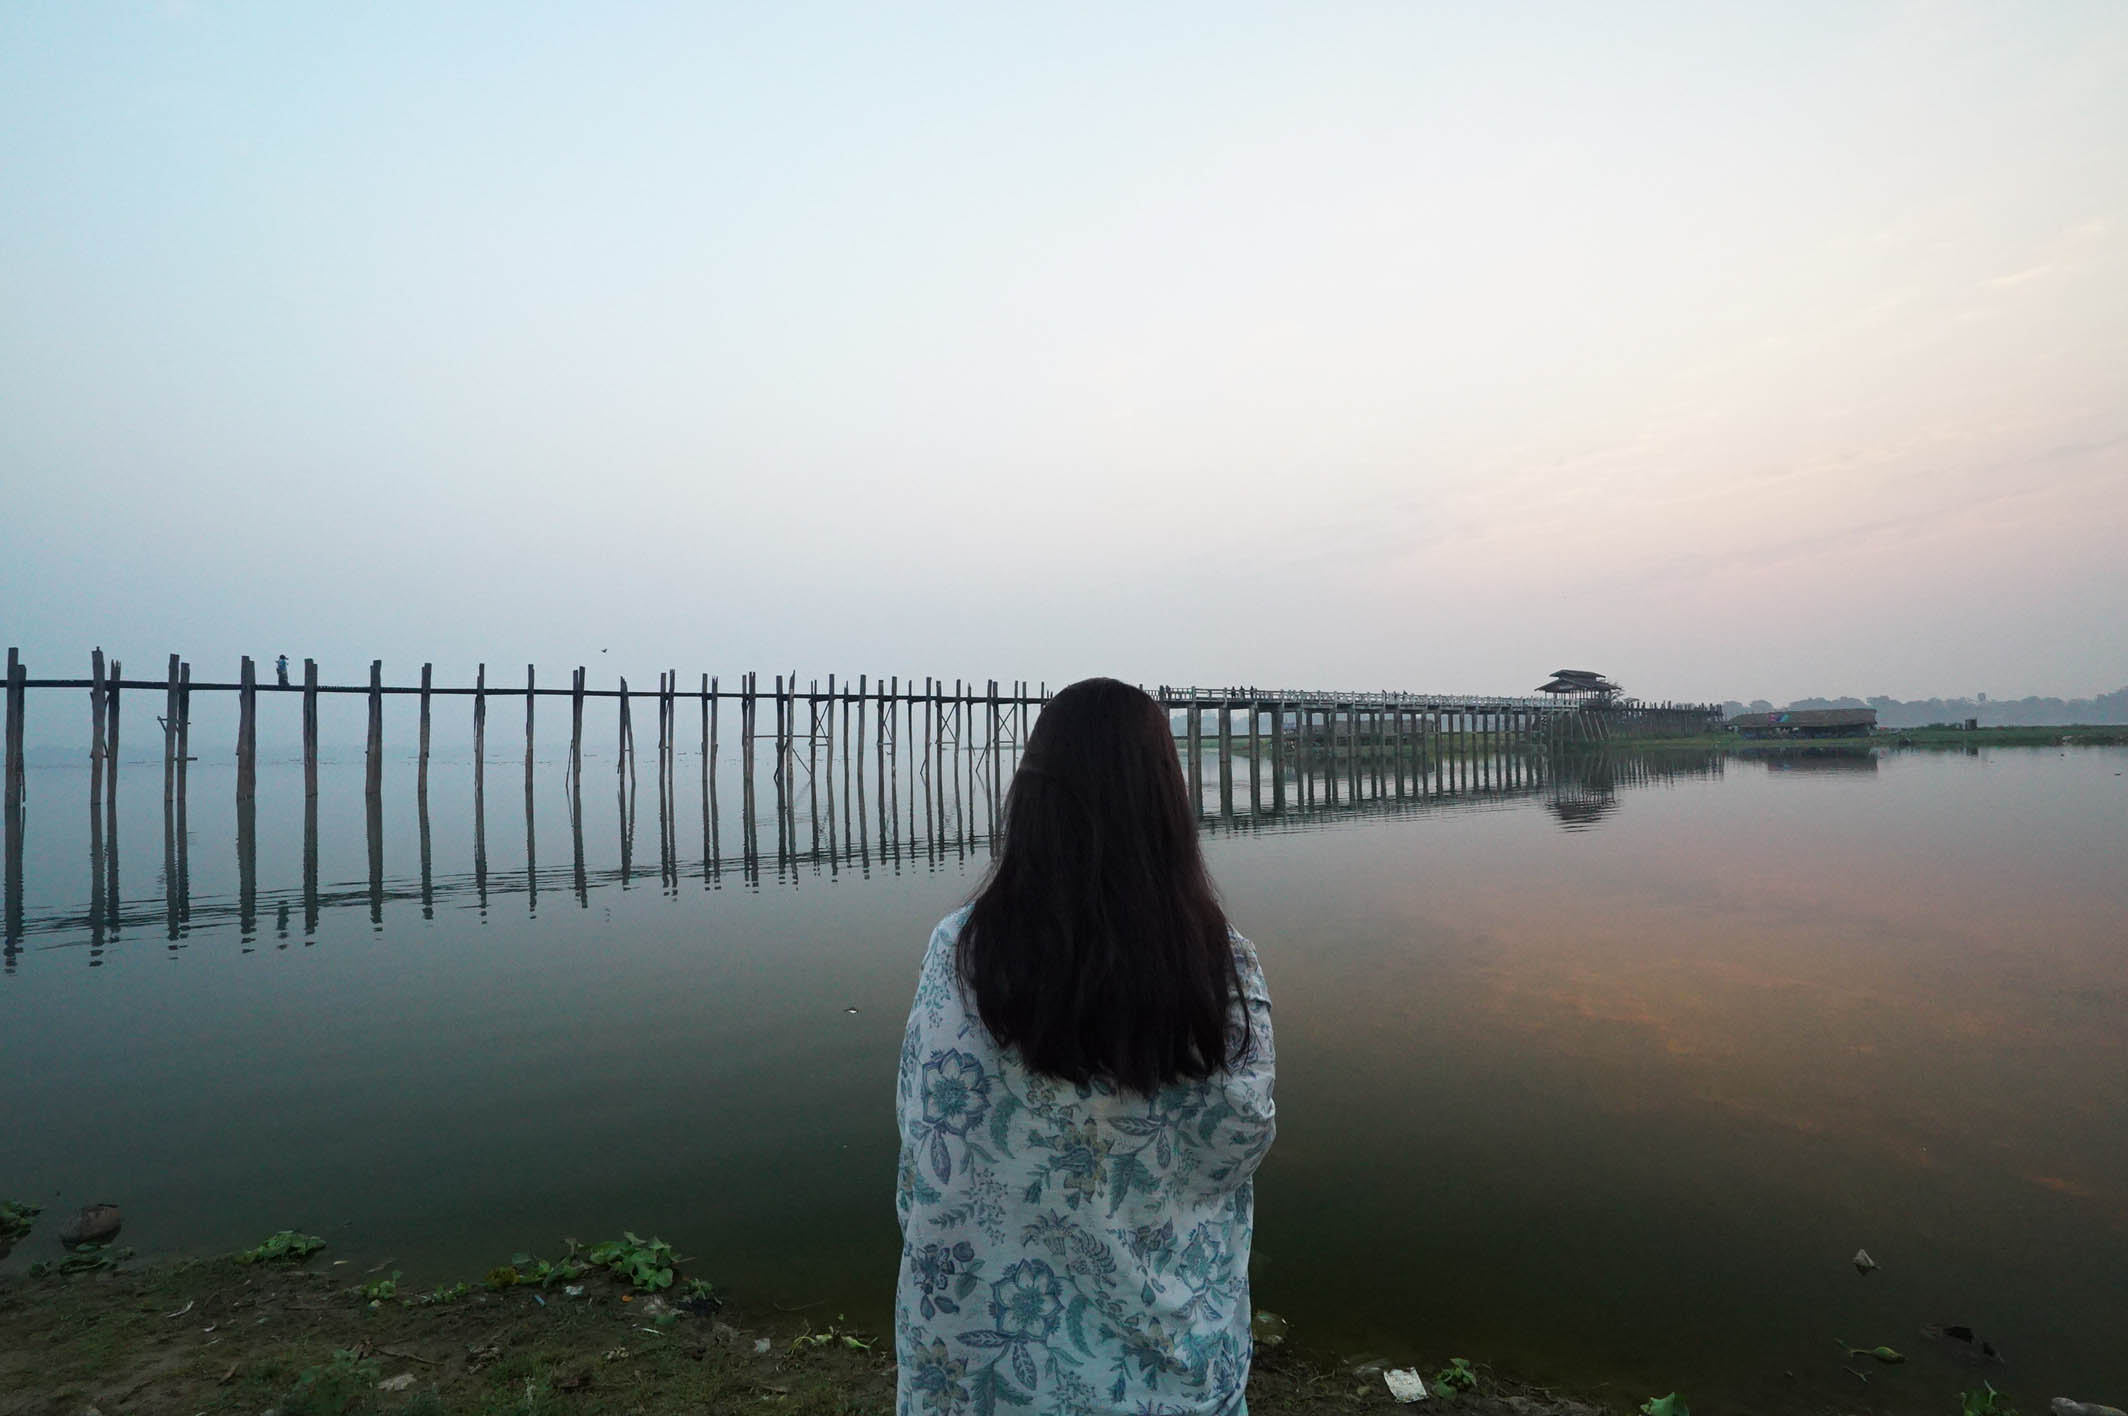 sunrise, u bein bridge, myanmar, burma, bridge, lake, travel, sunrise, travel blogger, discover, before dusk